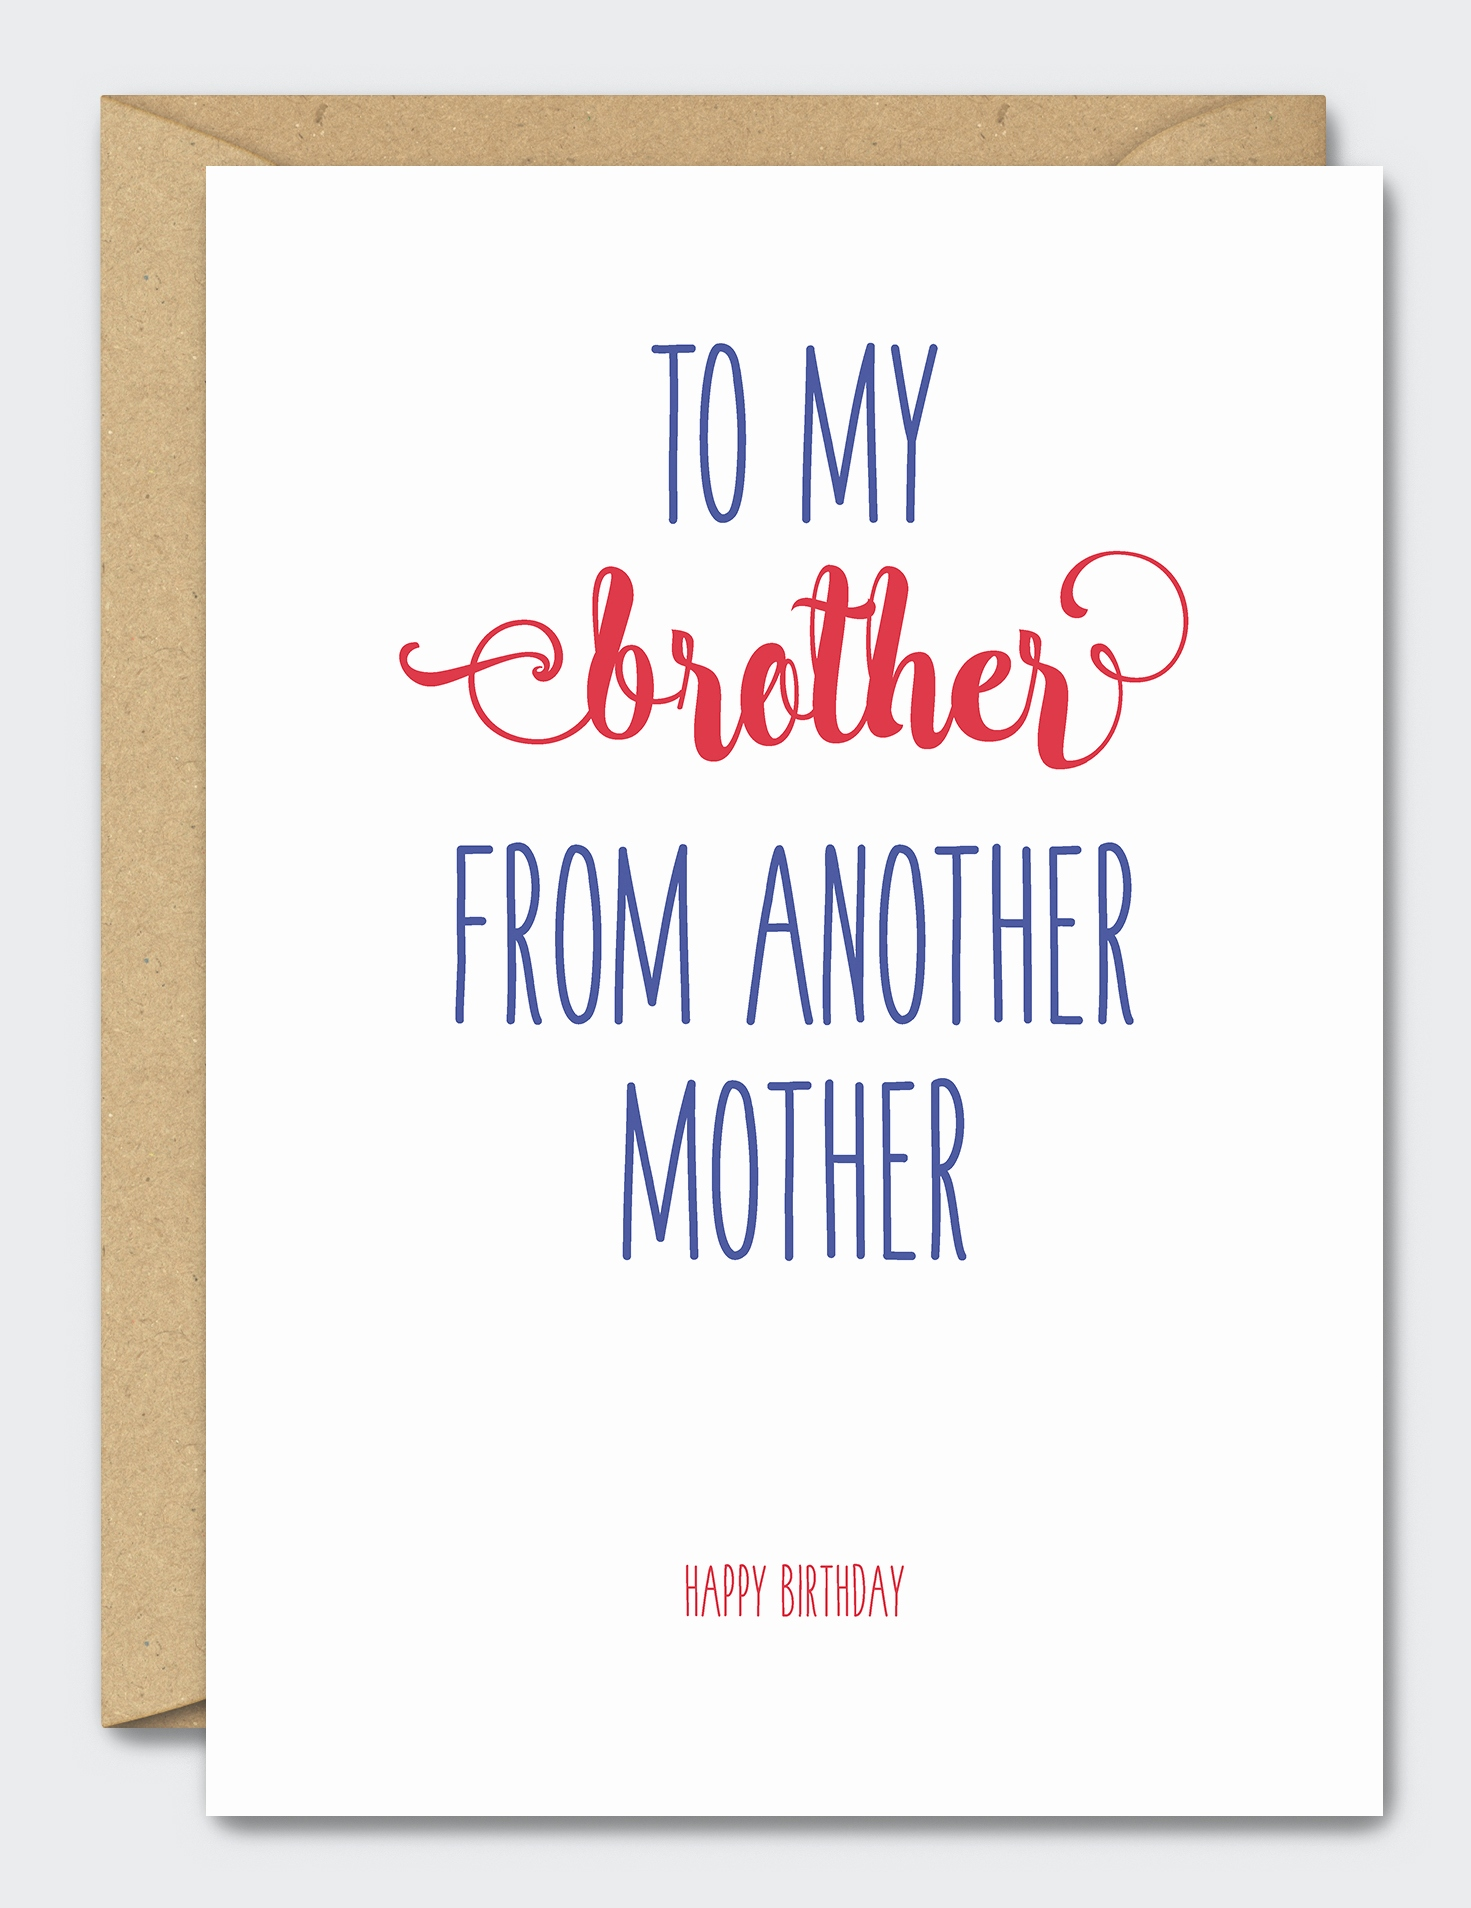 happy birthday to my brother from another mother ; happy-birthday-card-for-mother-fresh-to-my-brother-from-another-mother-happy-birthday-of-happy-birthday-card-for-mother